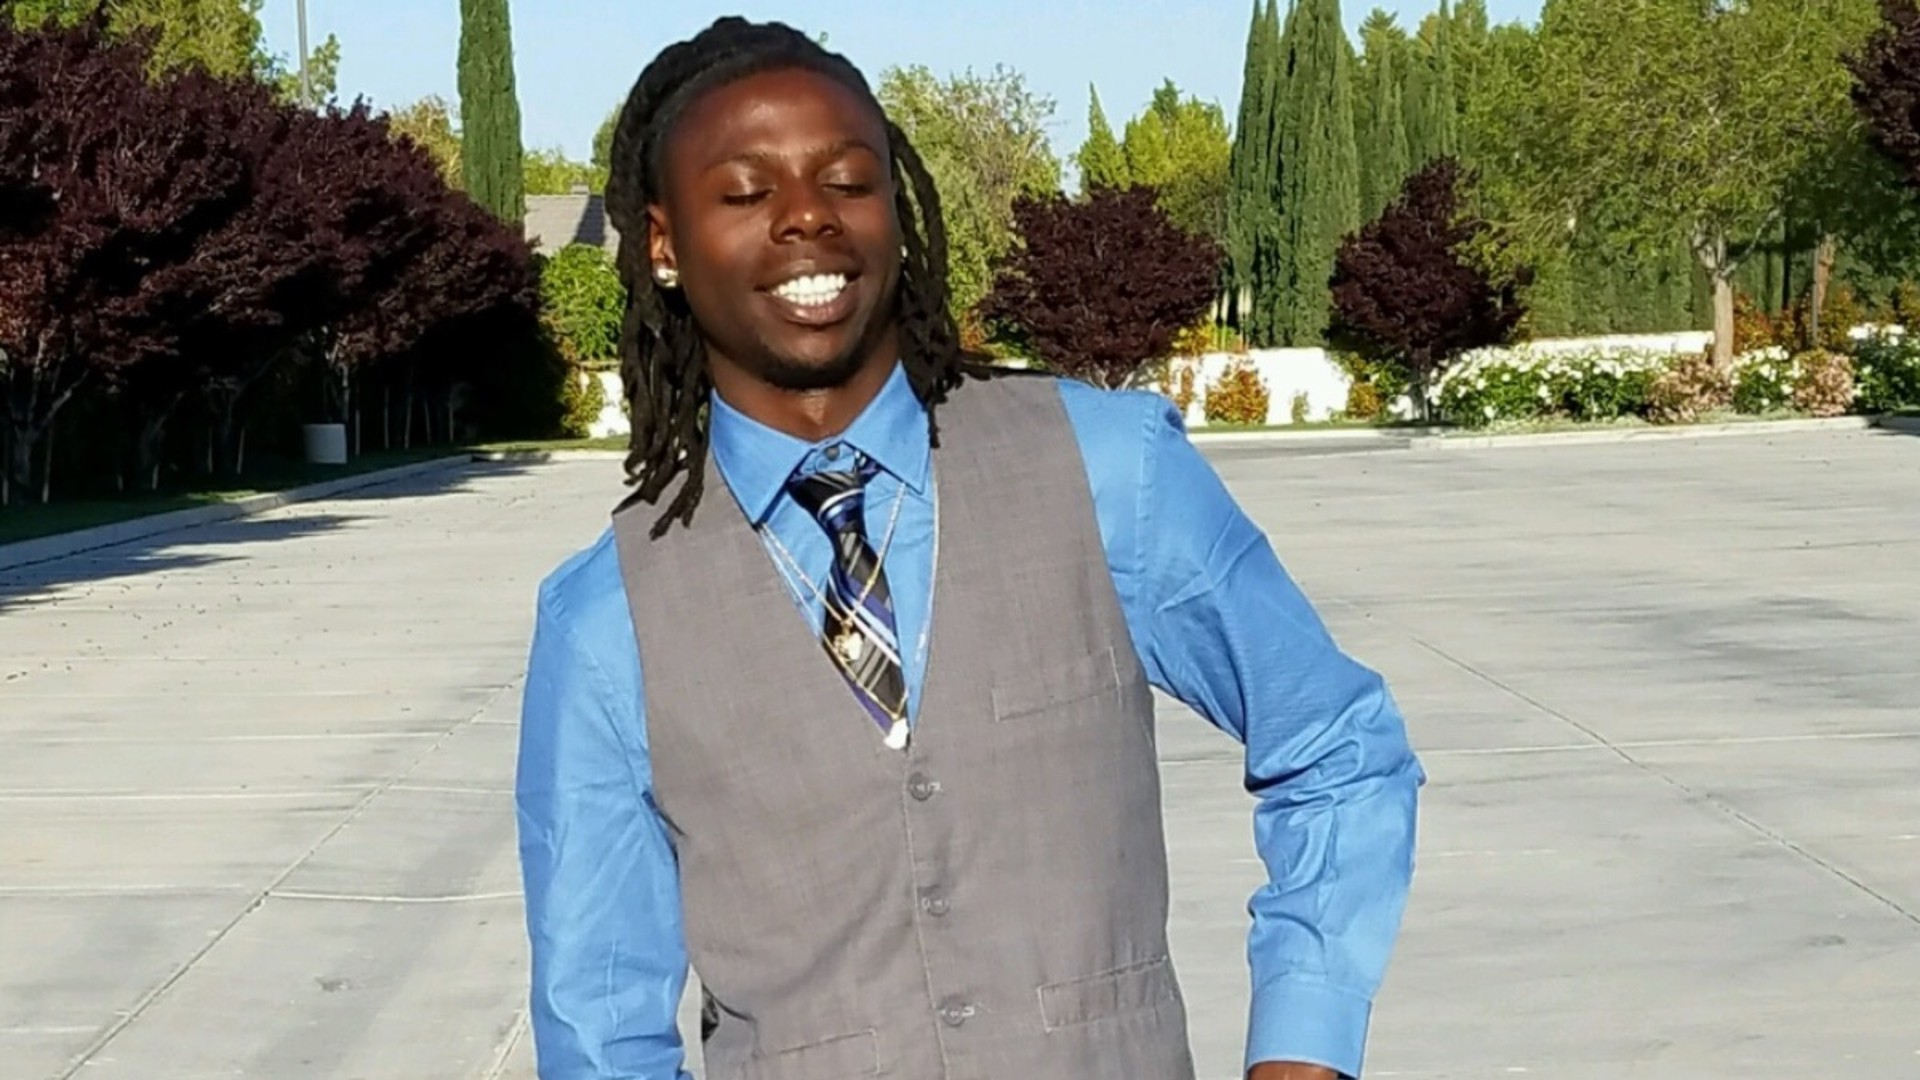 Community Members Question Initial Impression Of Suicide After Black Man Found Hanged At Palmdale Park Ktla